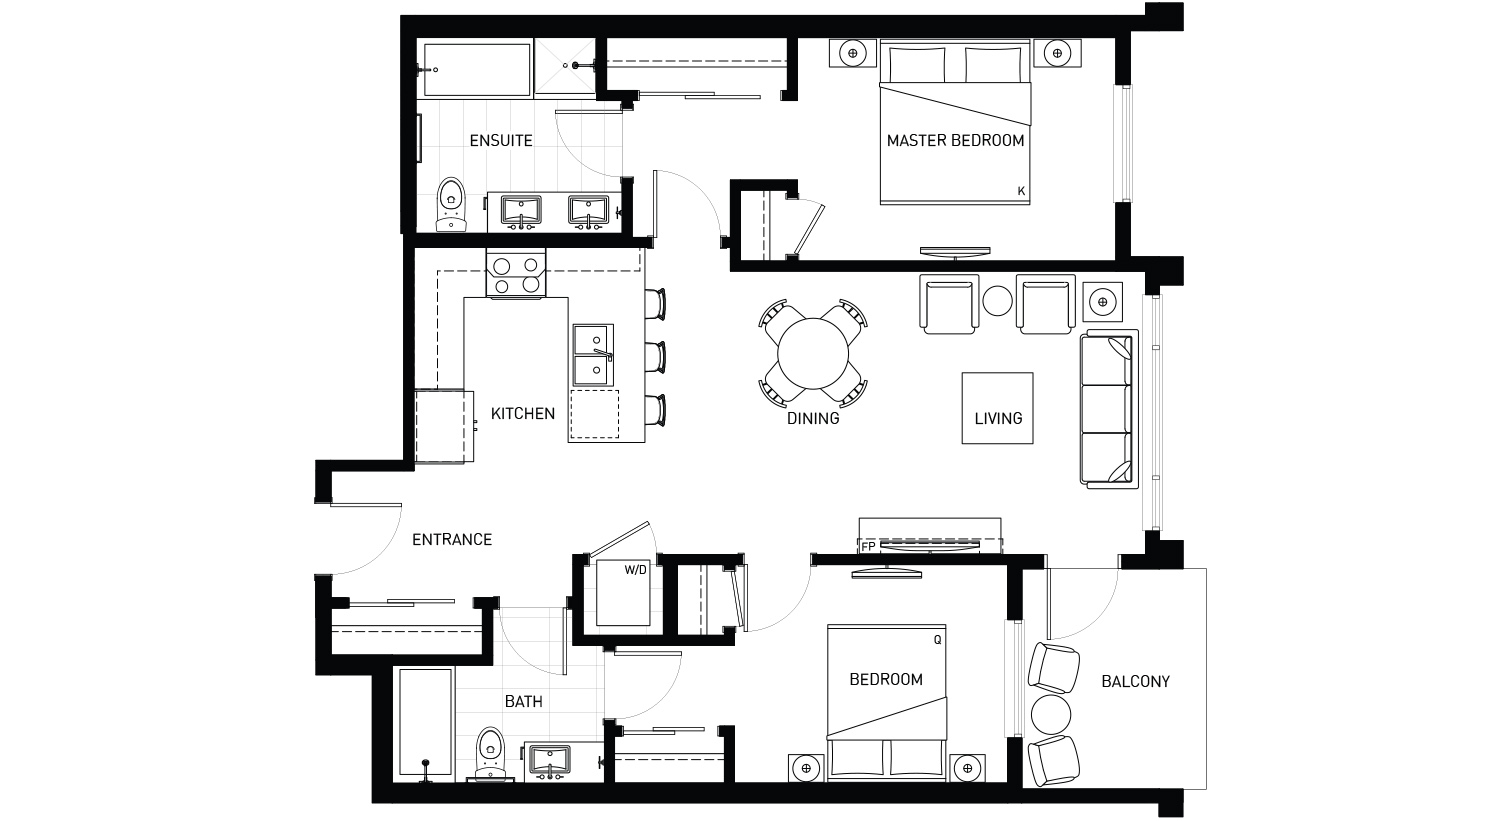 Plan B2 Floorplan